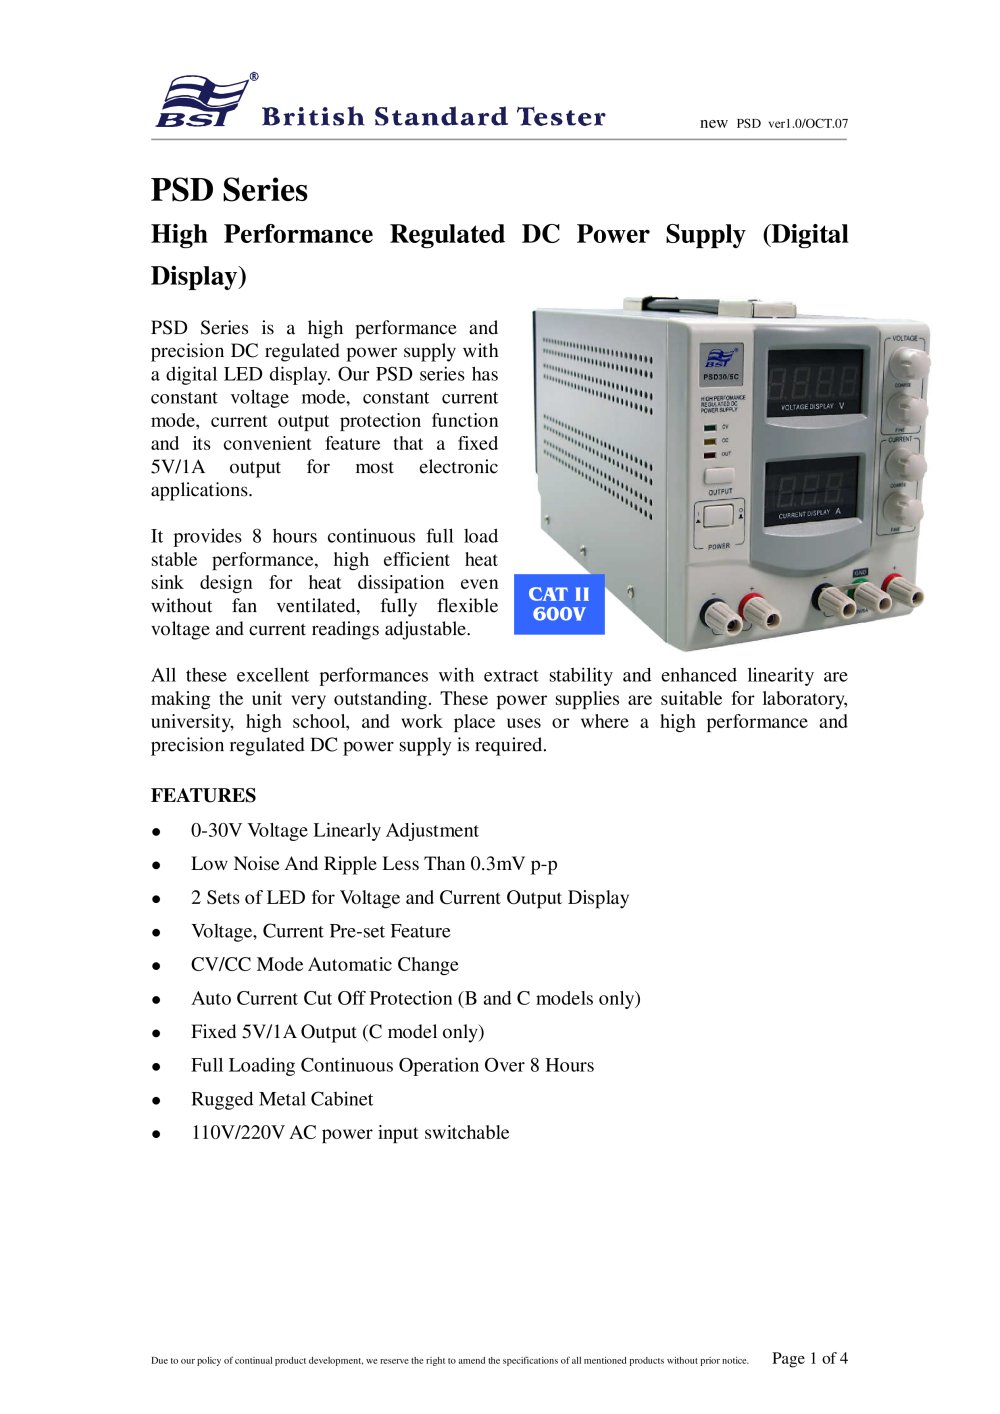 Psd Series High Performance Regulated Dc Power Supply Digital Display 1 4 Pages